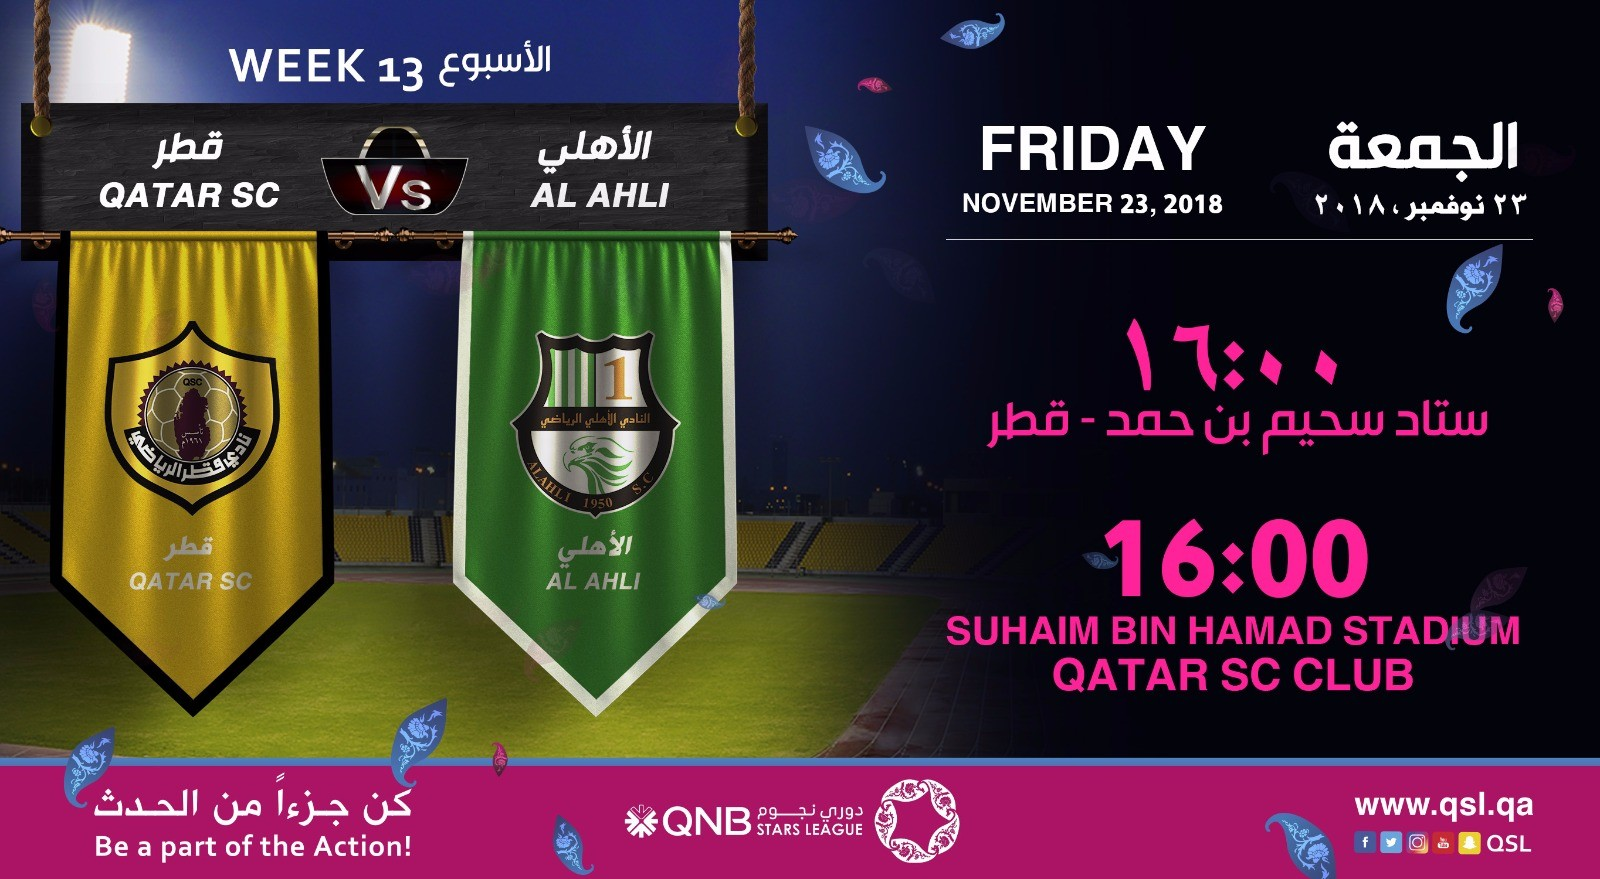 QNB Stars League Week 13 — Qatar SC vs Al Ahli